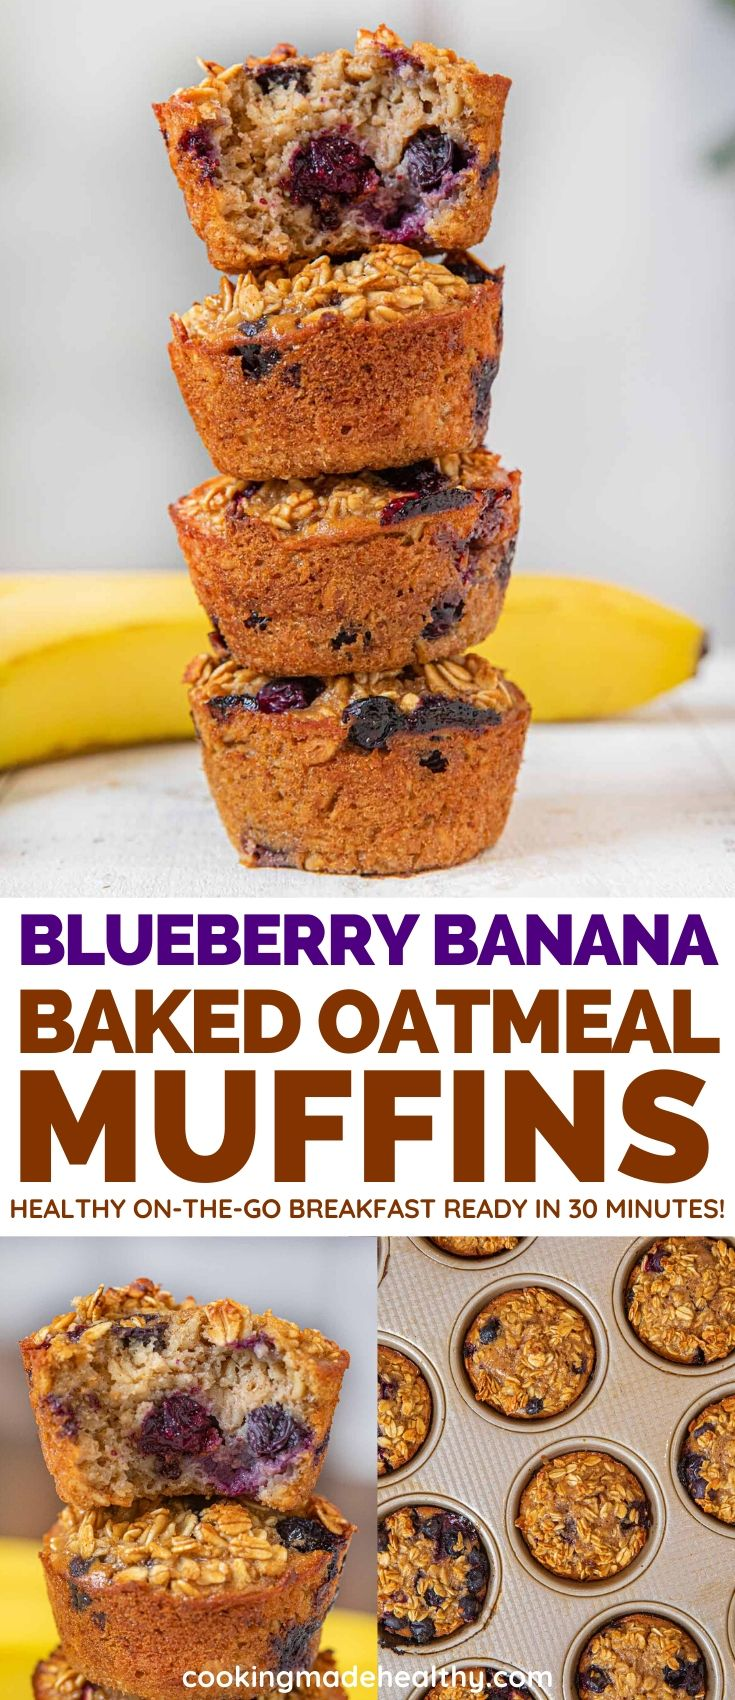 Blueberry Banana Baked Oatmeal Muffins